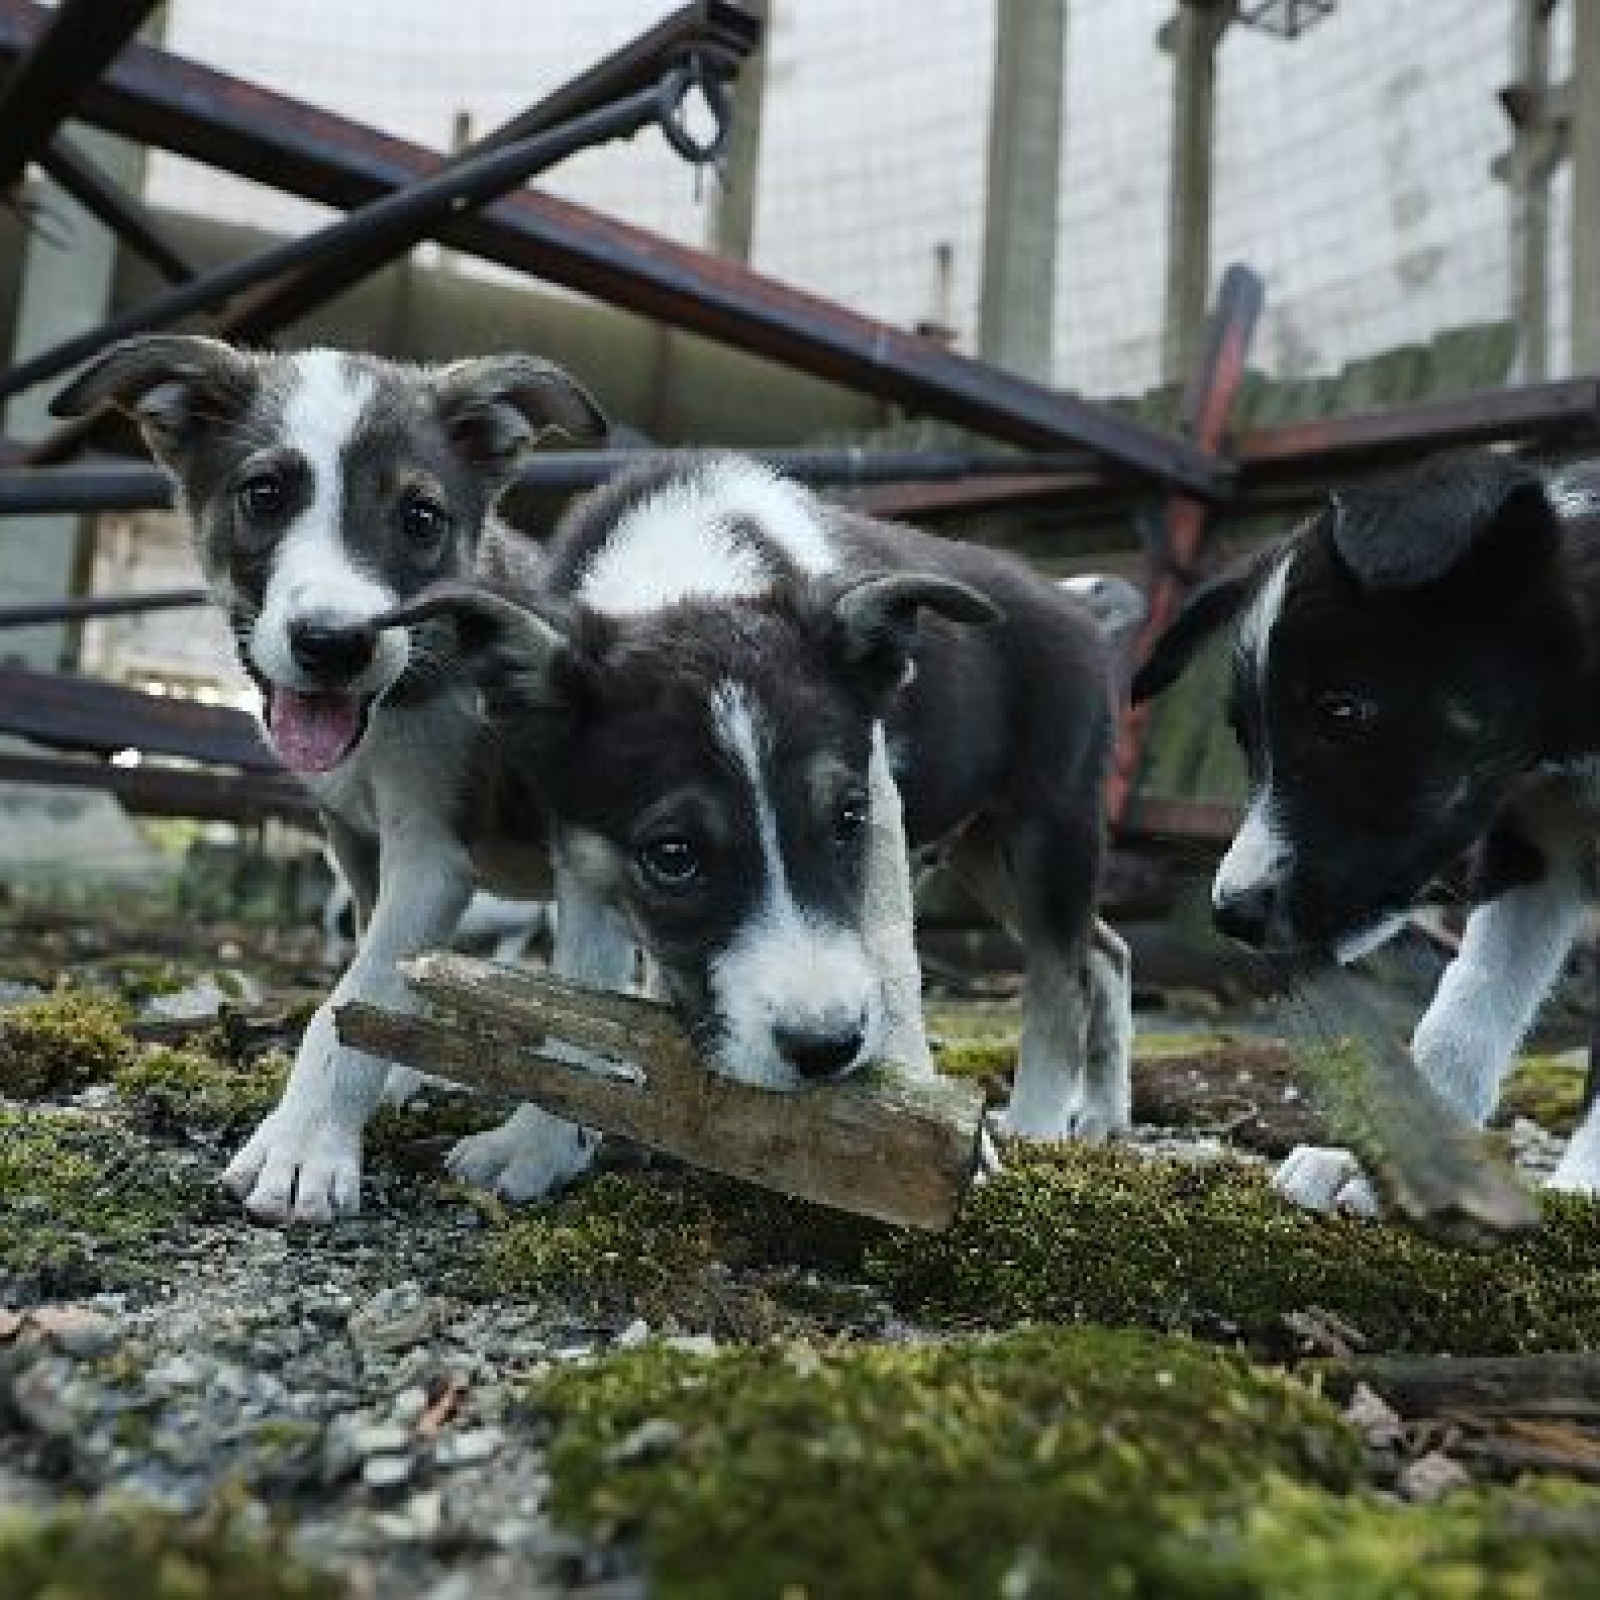 Meet the Dogs of Chernobyl: These Wild Animals Are Up for